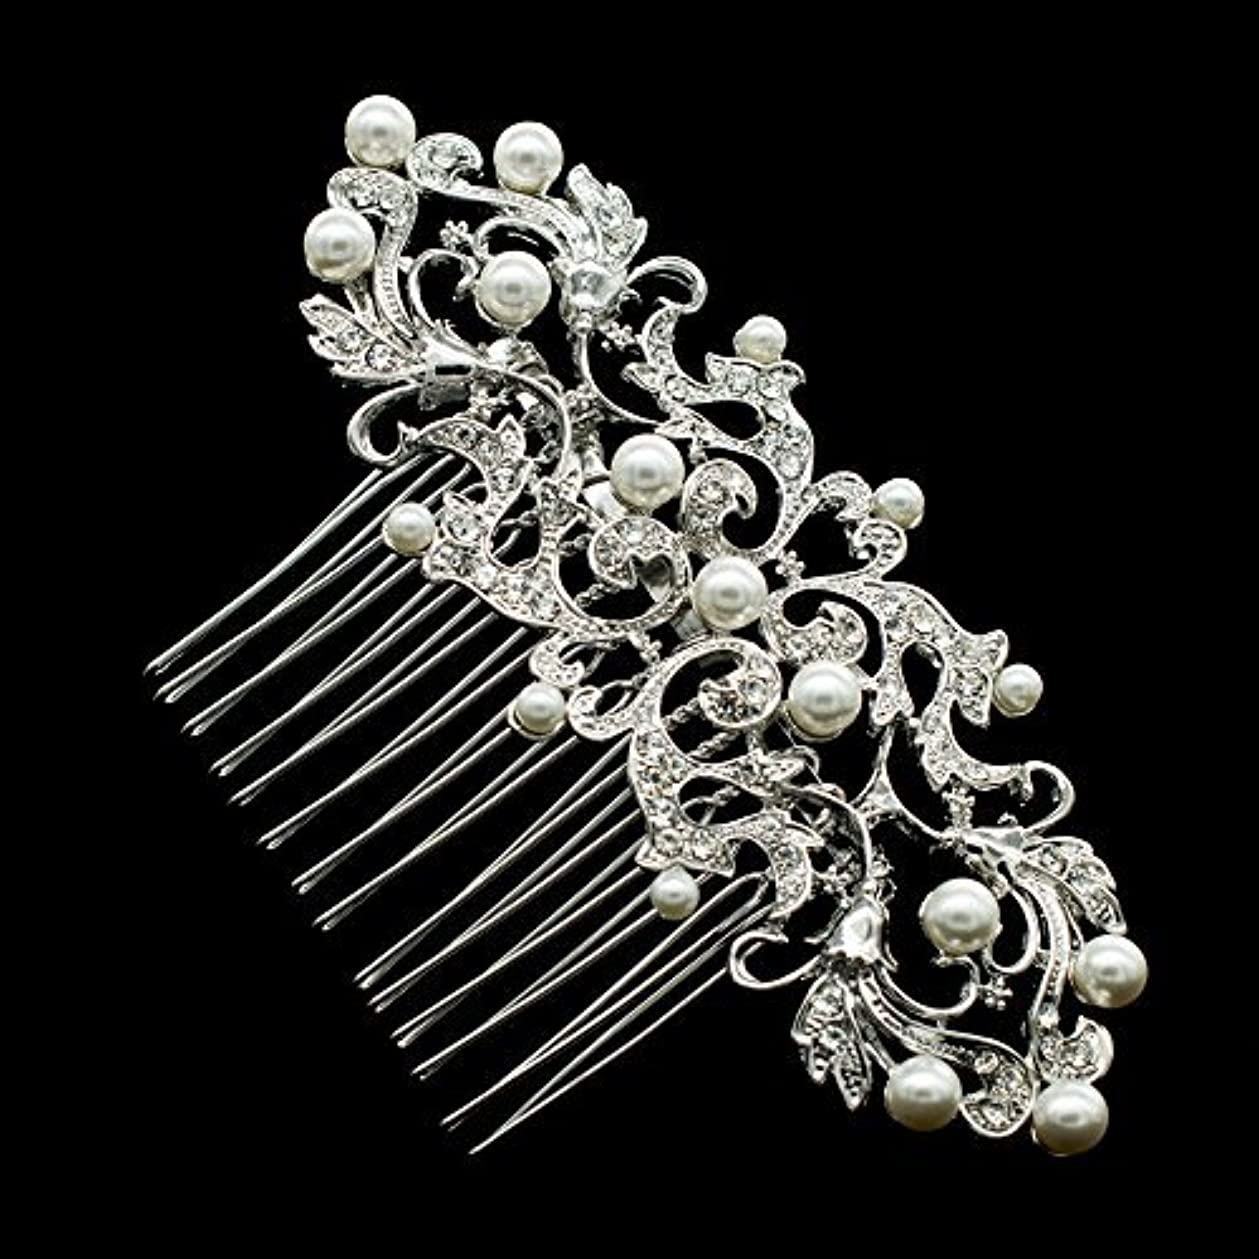 SEP Rhinestone Crystal Wedding Bride Hair Comb Hairpins Jewelry Accessories 2221R [並行輸入品]